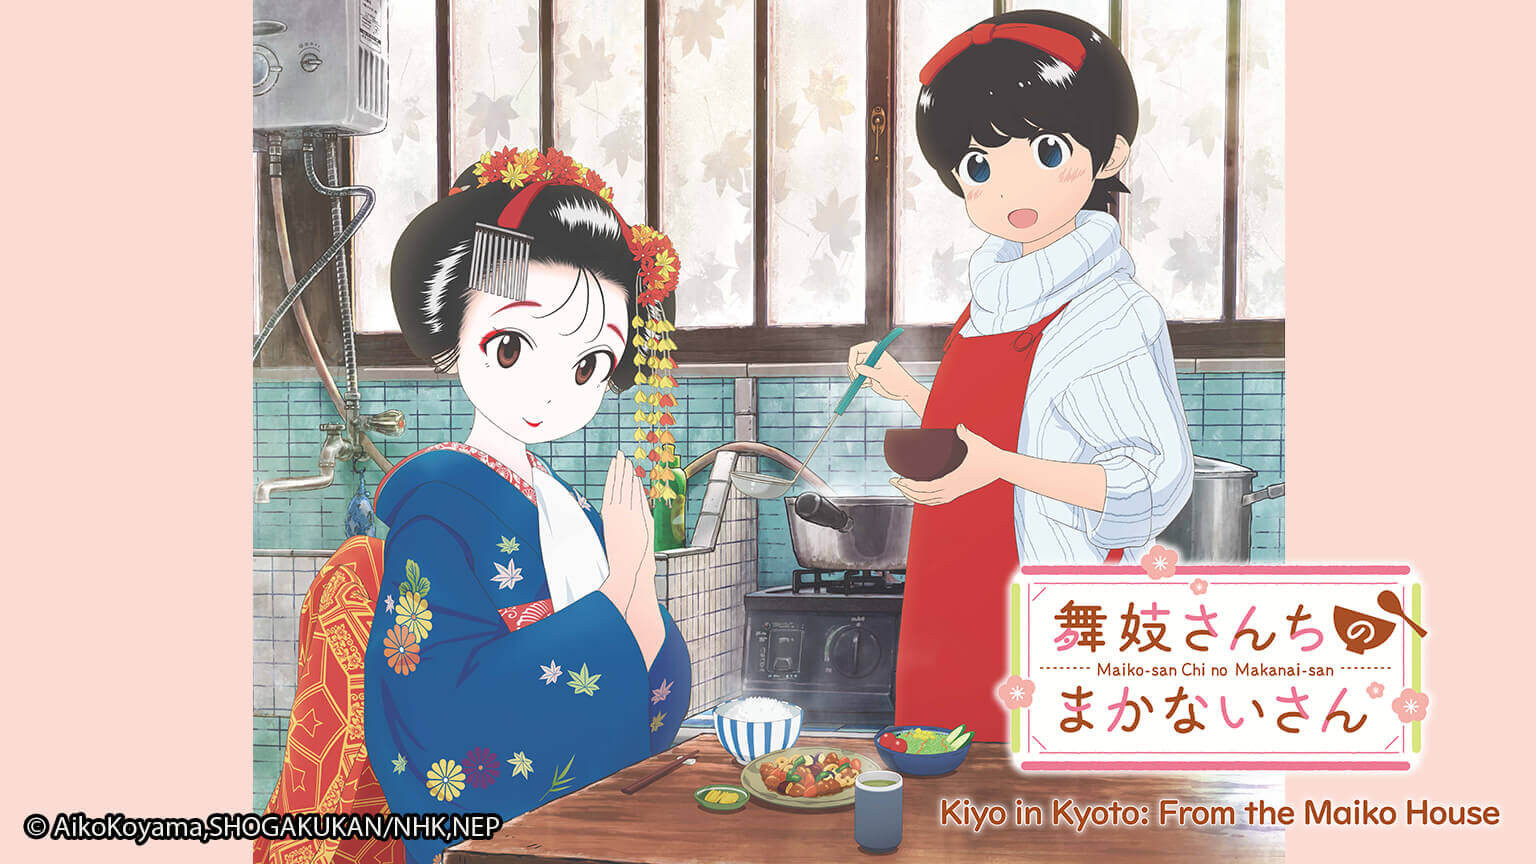 Maiko-san Chi no Makanai-san - Kiyo in Kyoto: From the Maiko House -